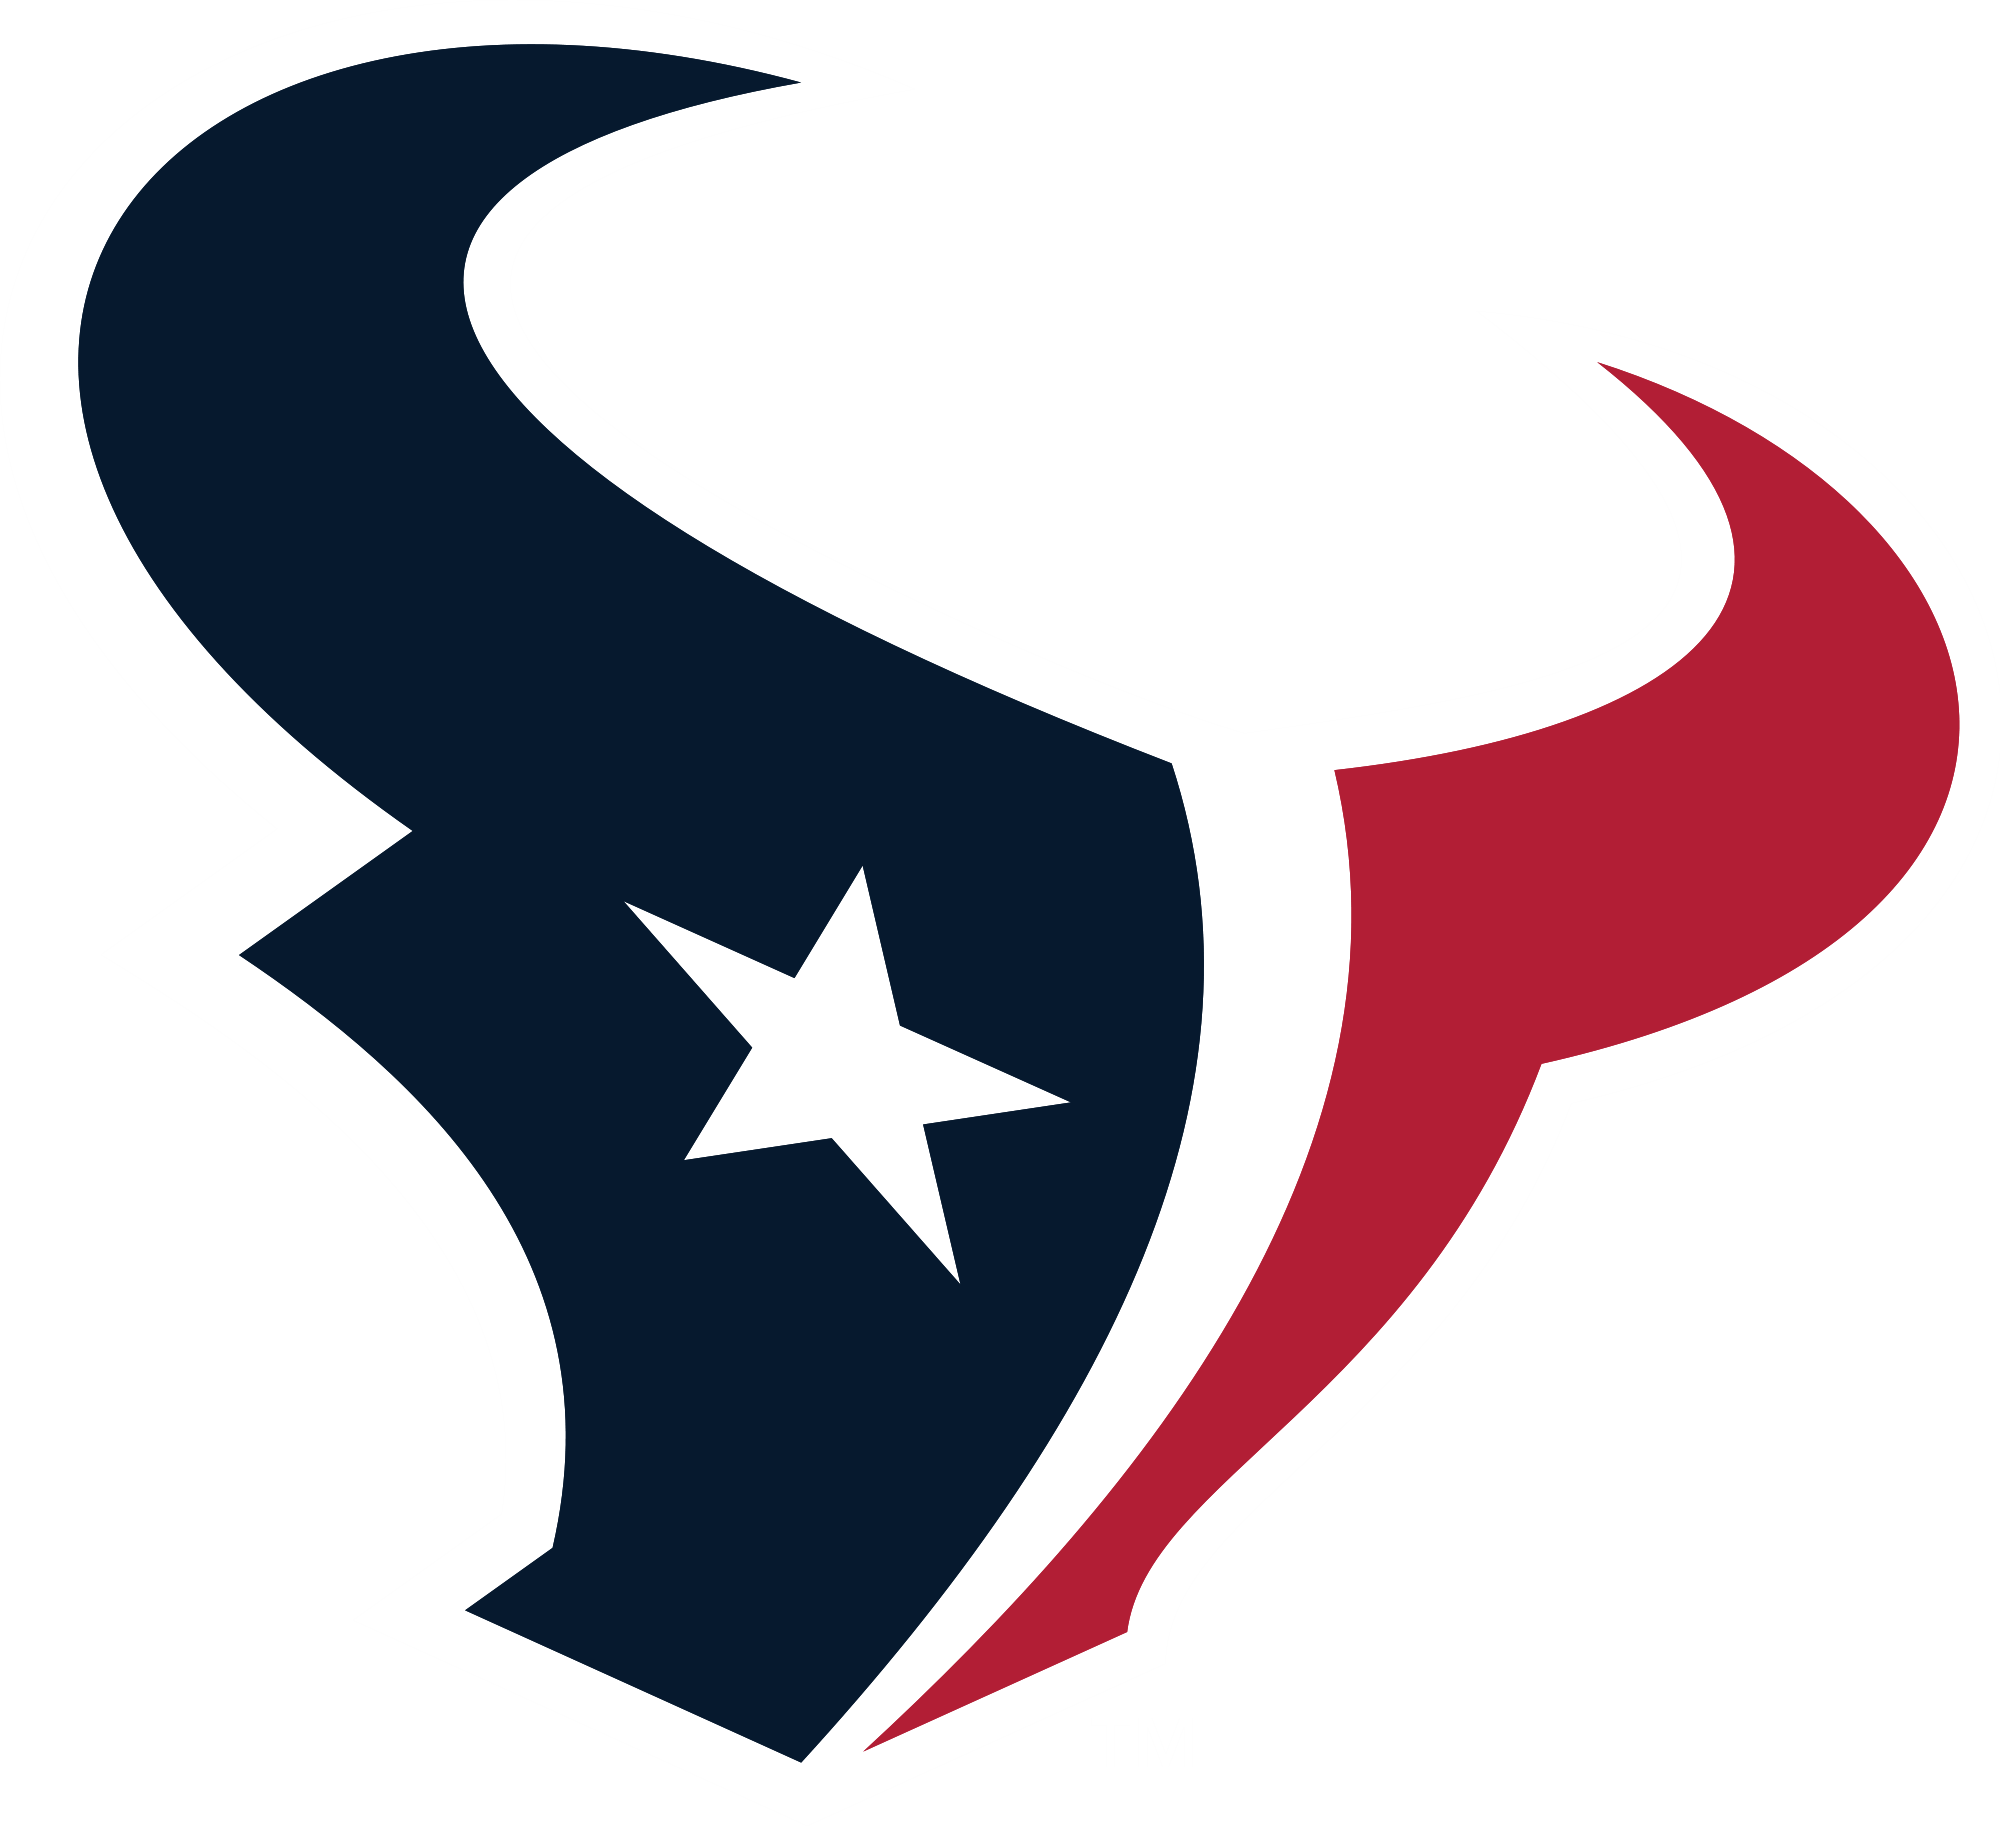 Pics photos houston texans logo chris creamer s sports - Texans Logo Download Houston Texans Logo Wallpapers The Houston Texans Are A